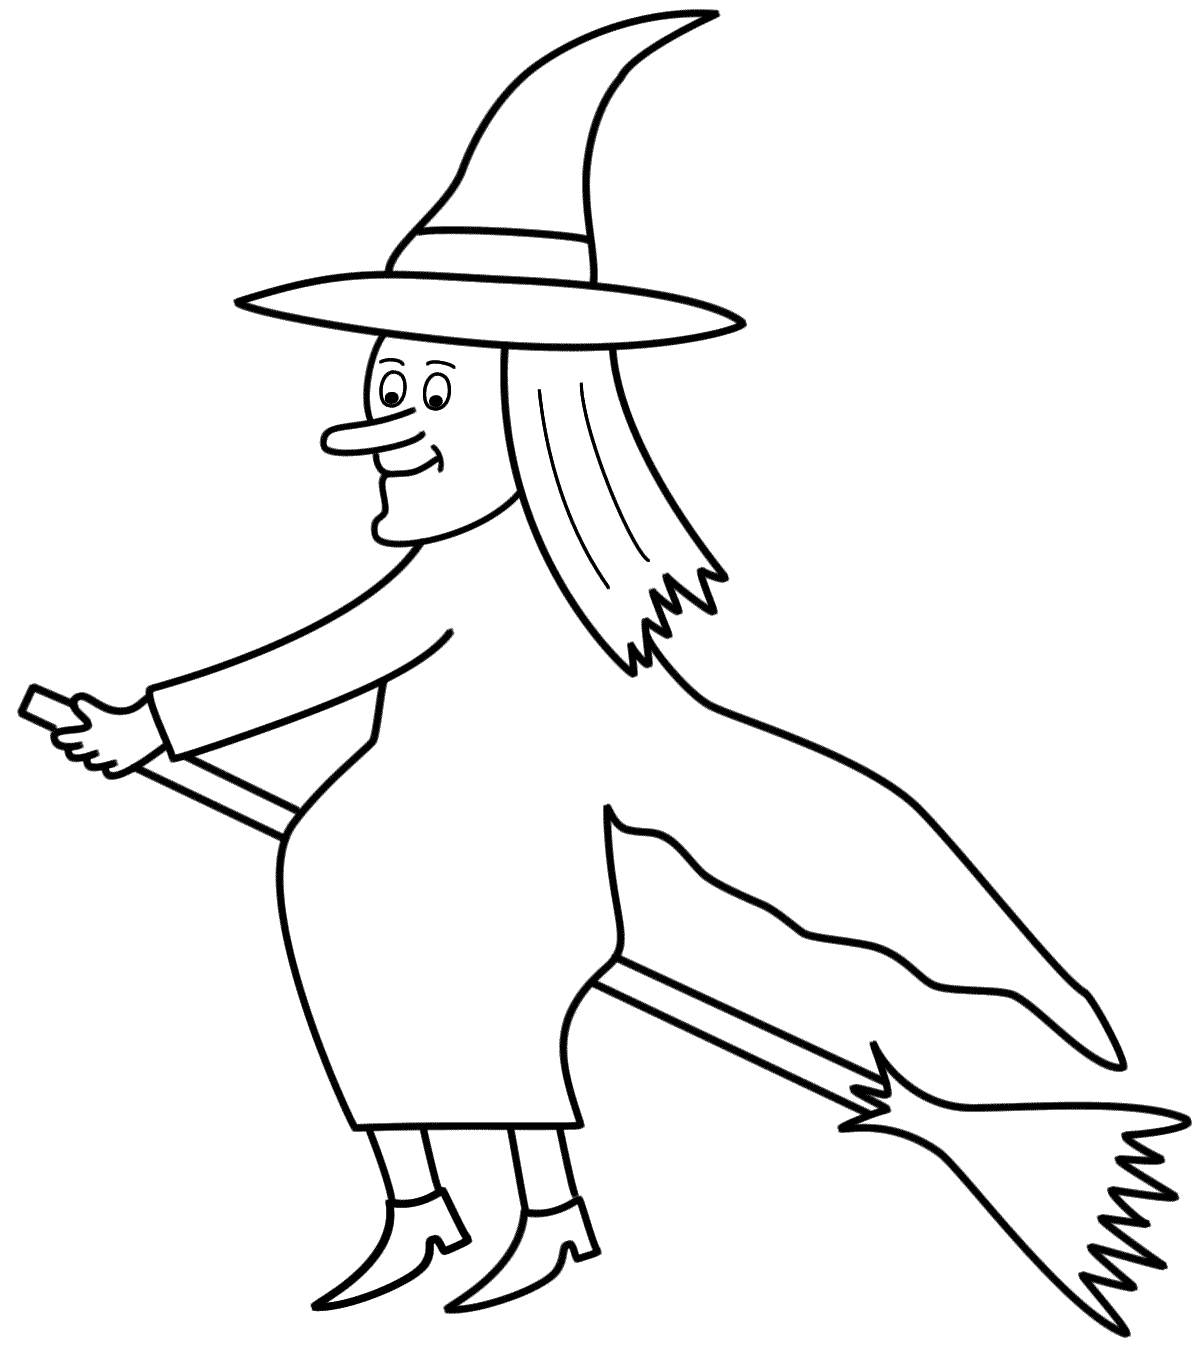 witch coloring pages | Witch Flying With Bats Coloring ...